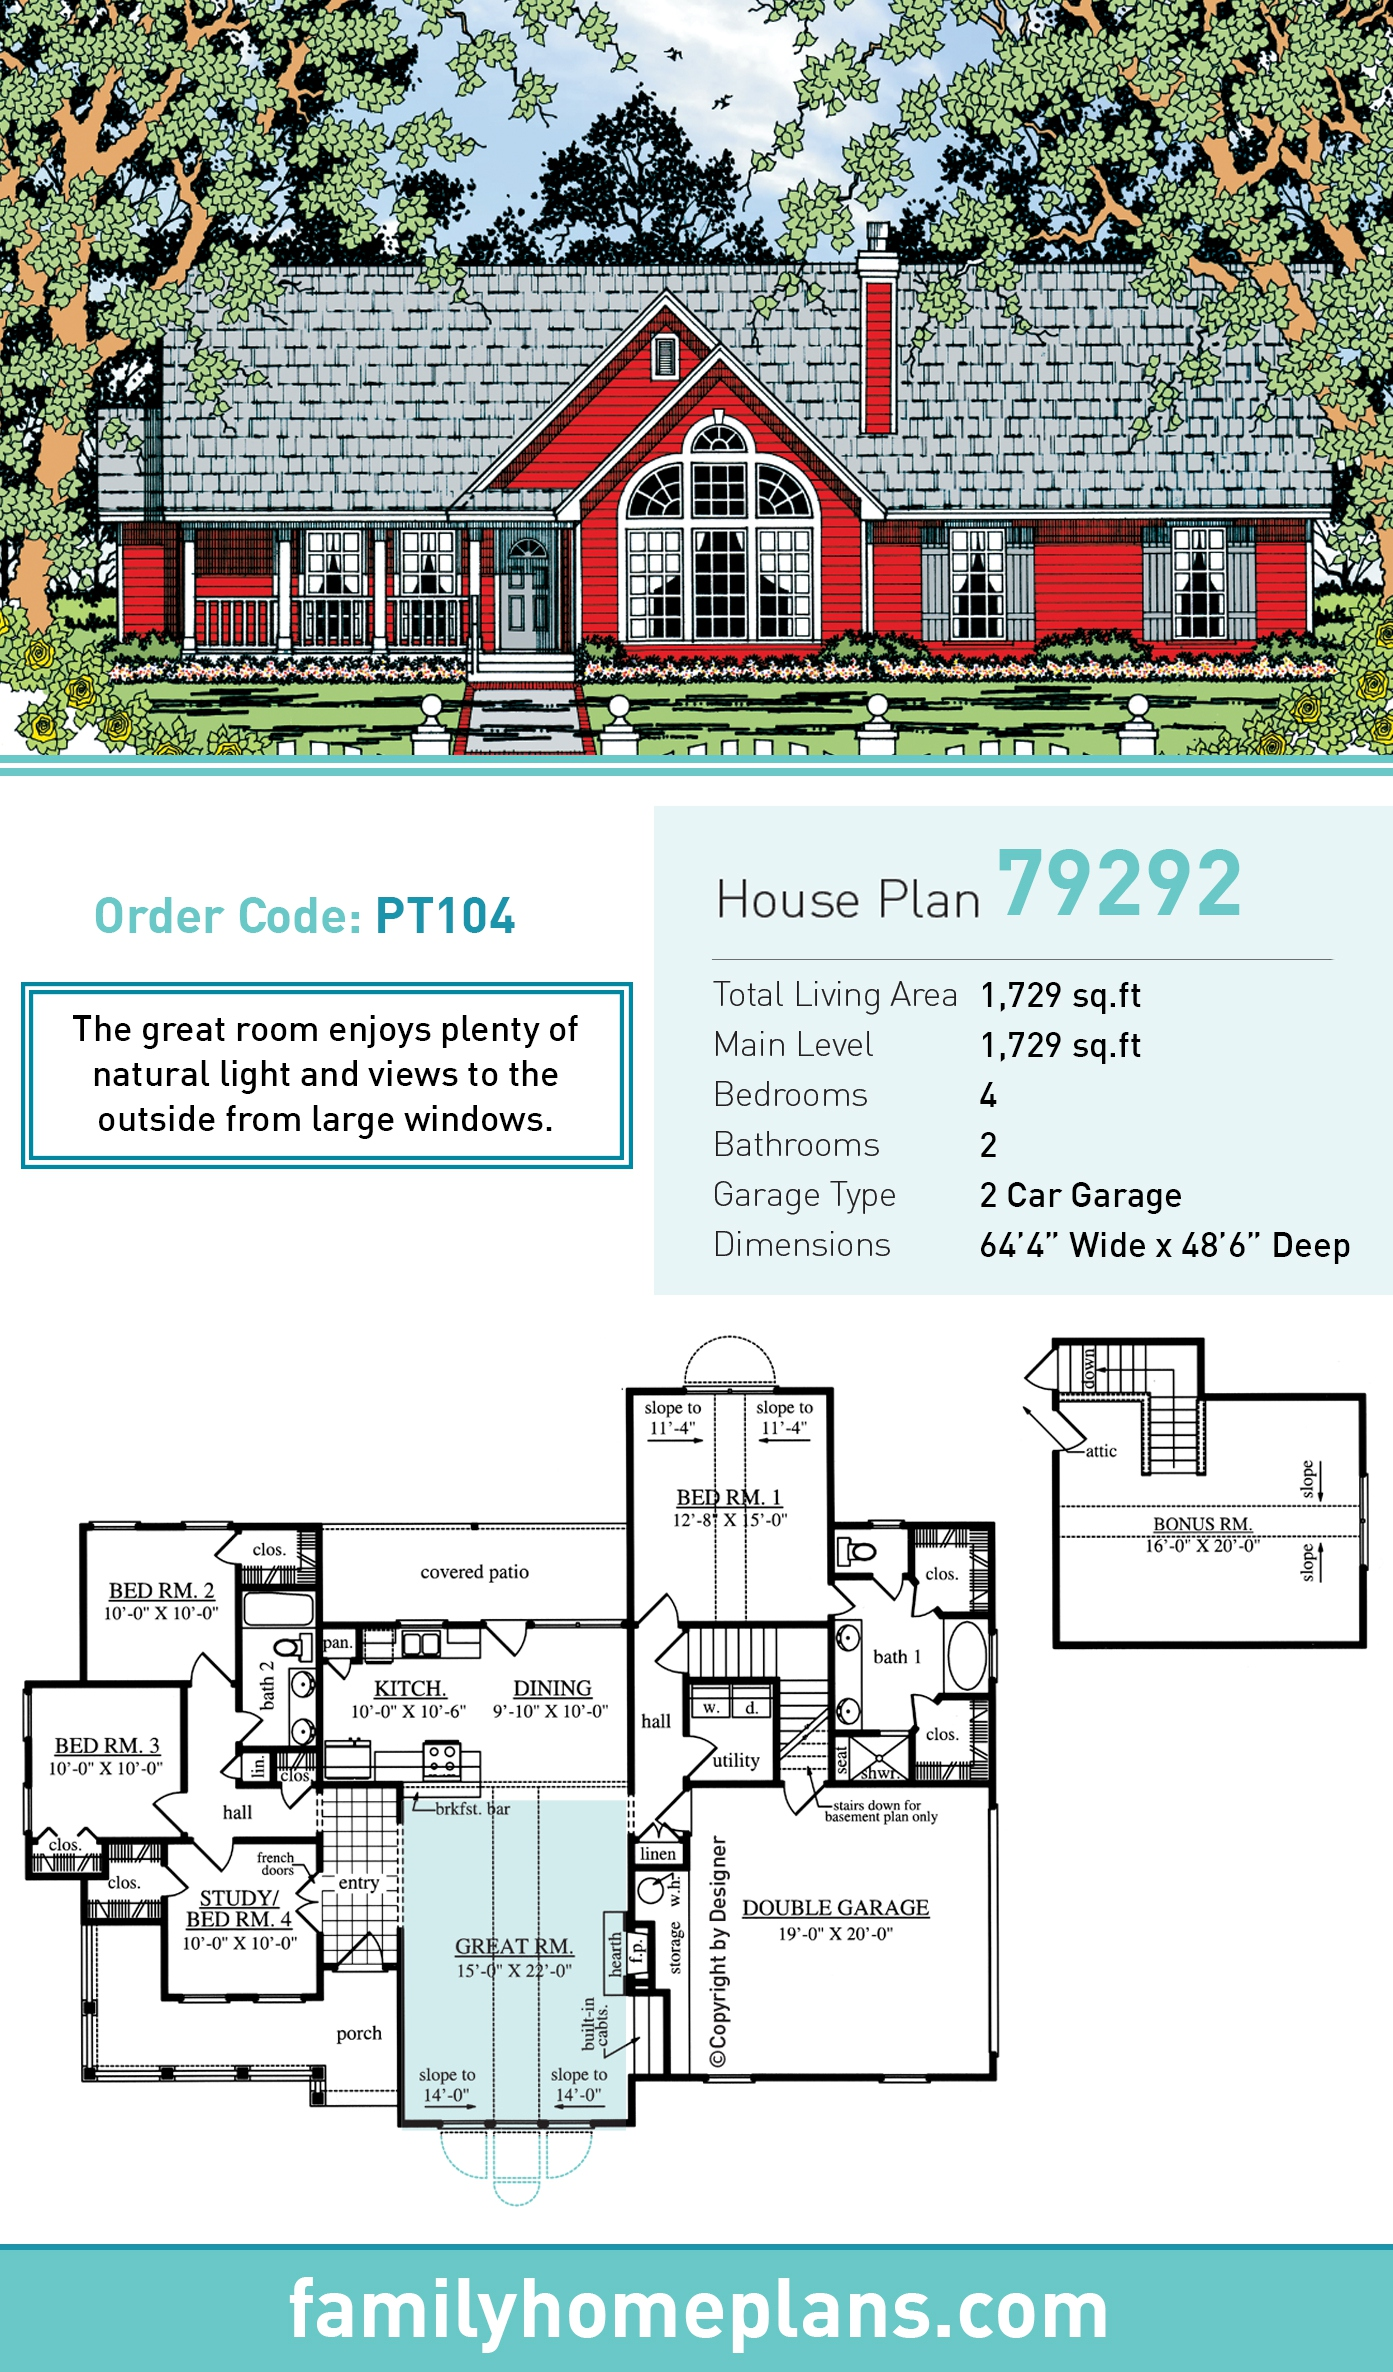 Country, One-Story House Plan 79292 with 4 Beds, 2 Baths, 2 Car Garage